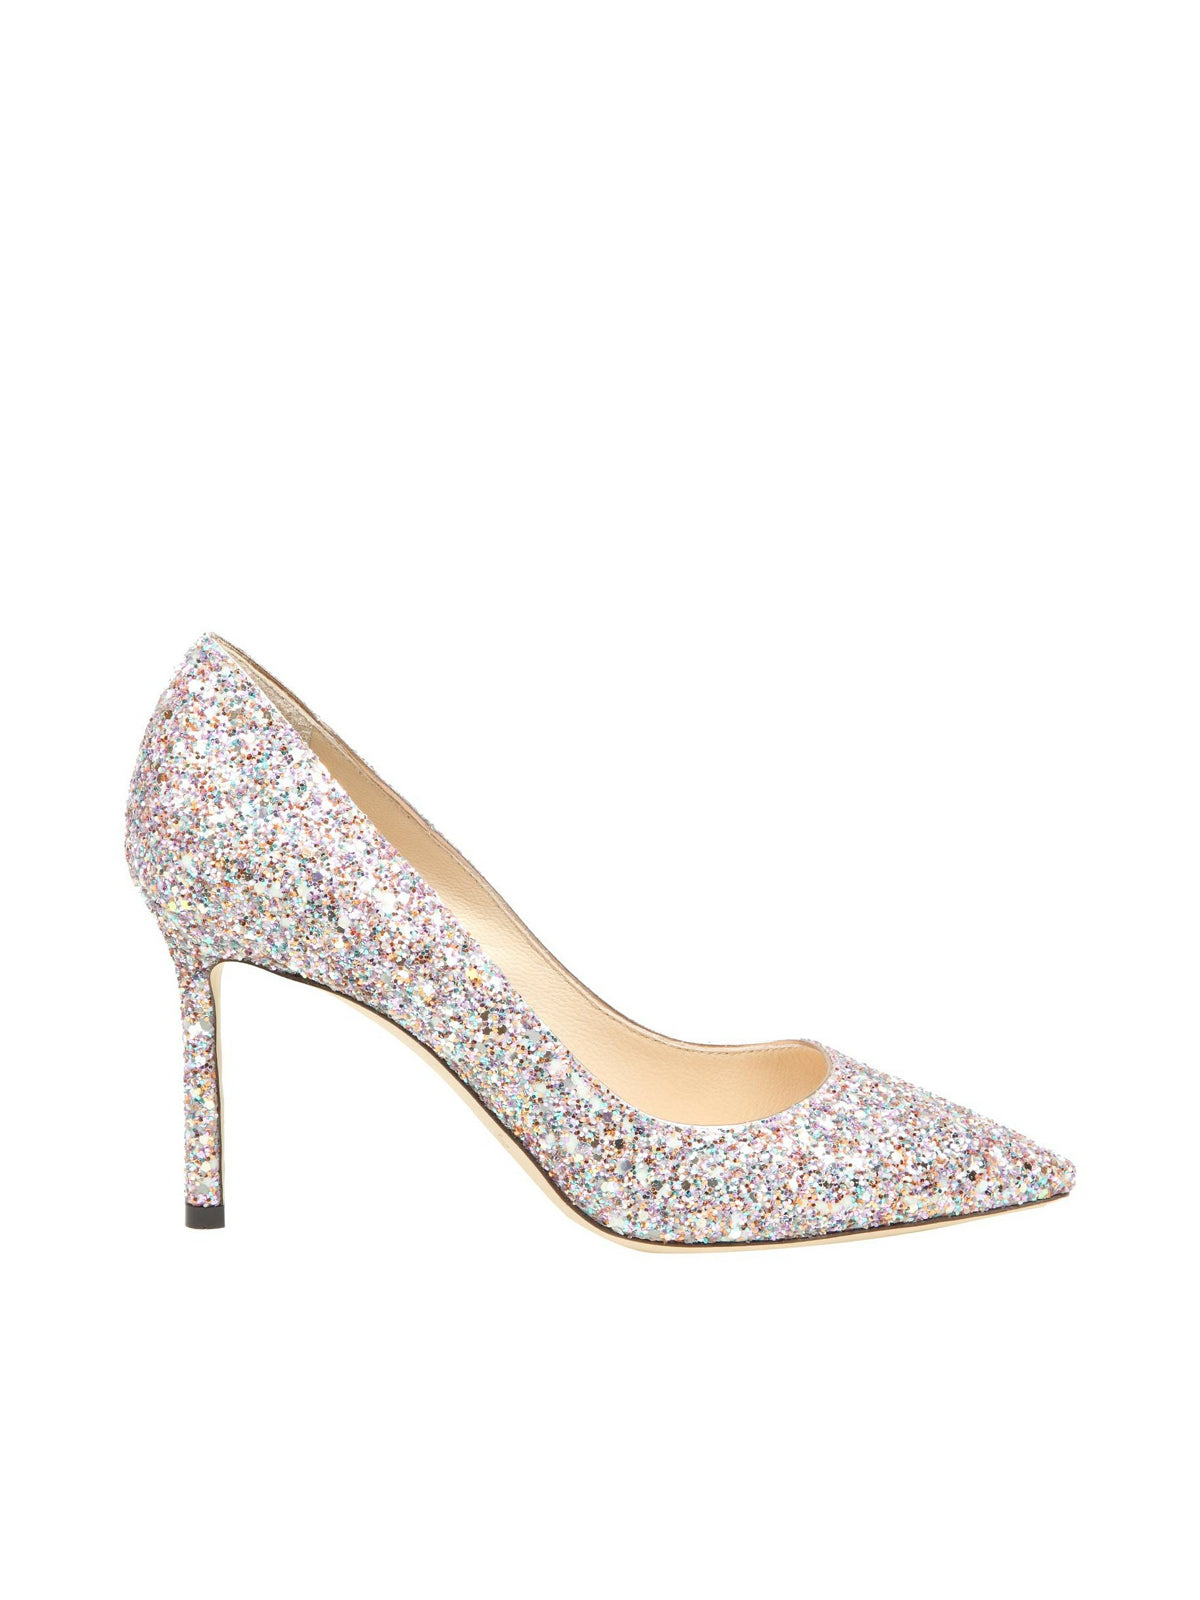 JIMMY CHOO DECOLLETE` LOVE 85